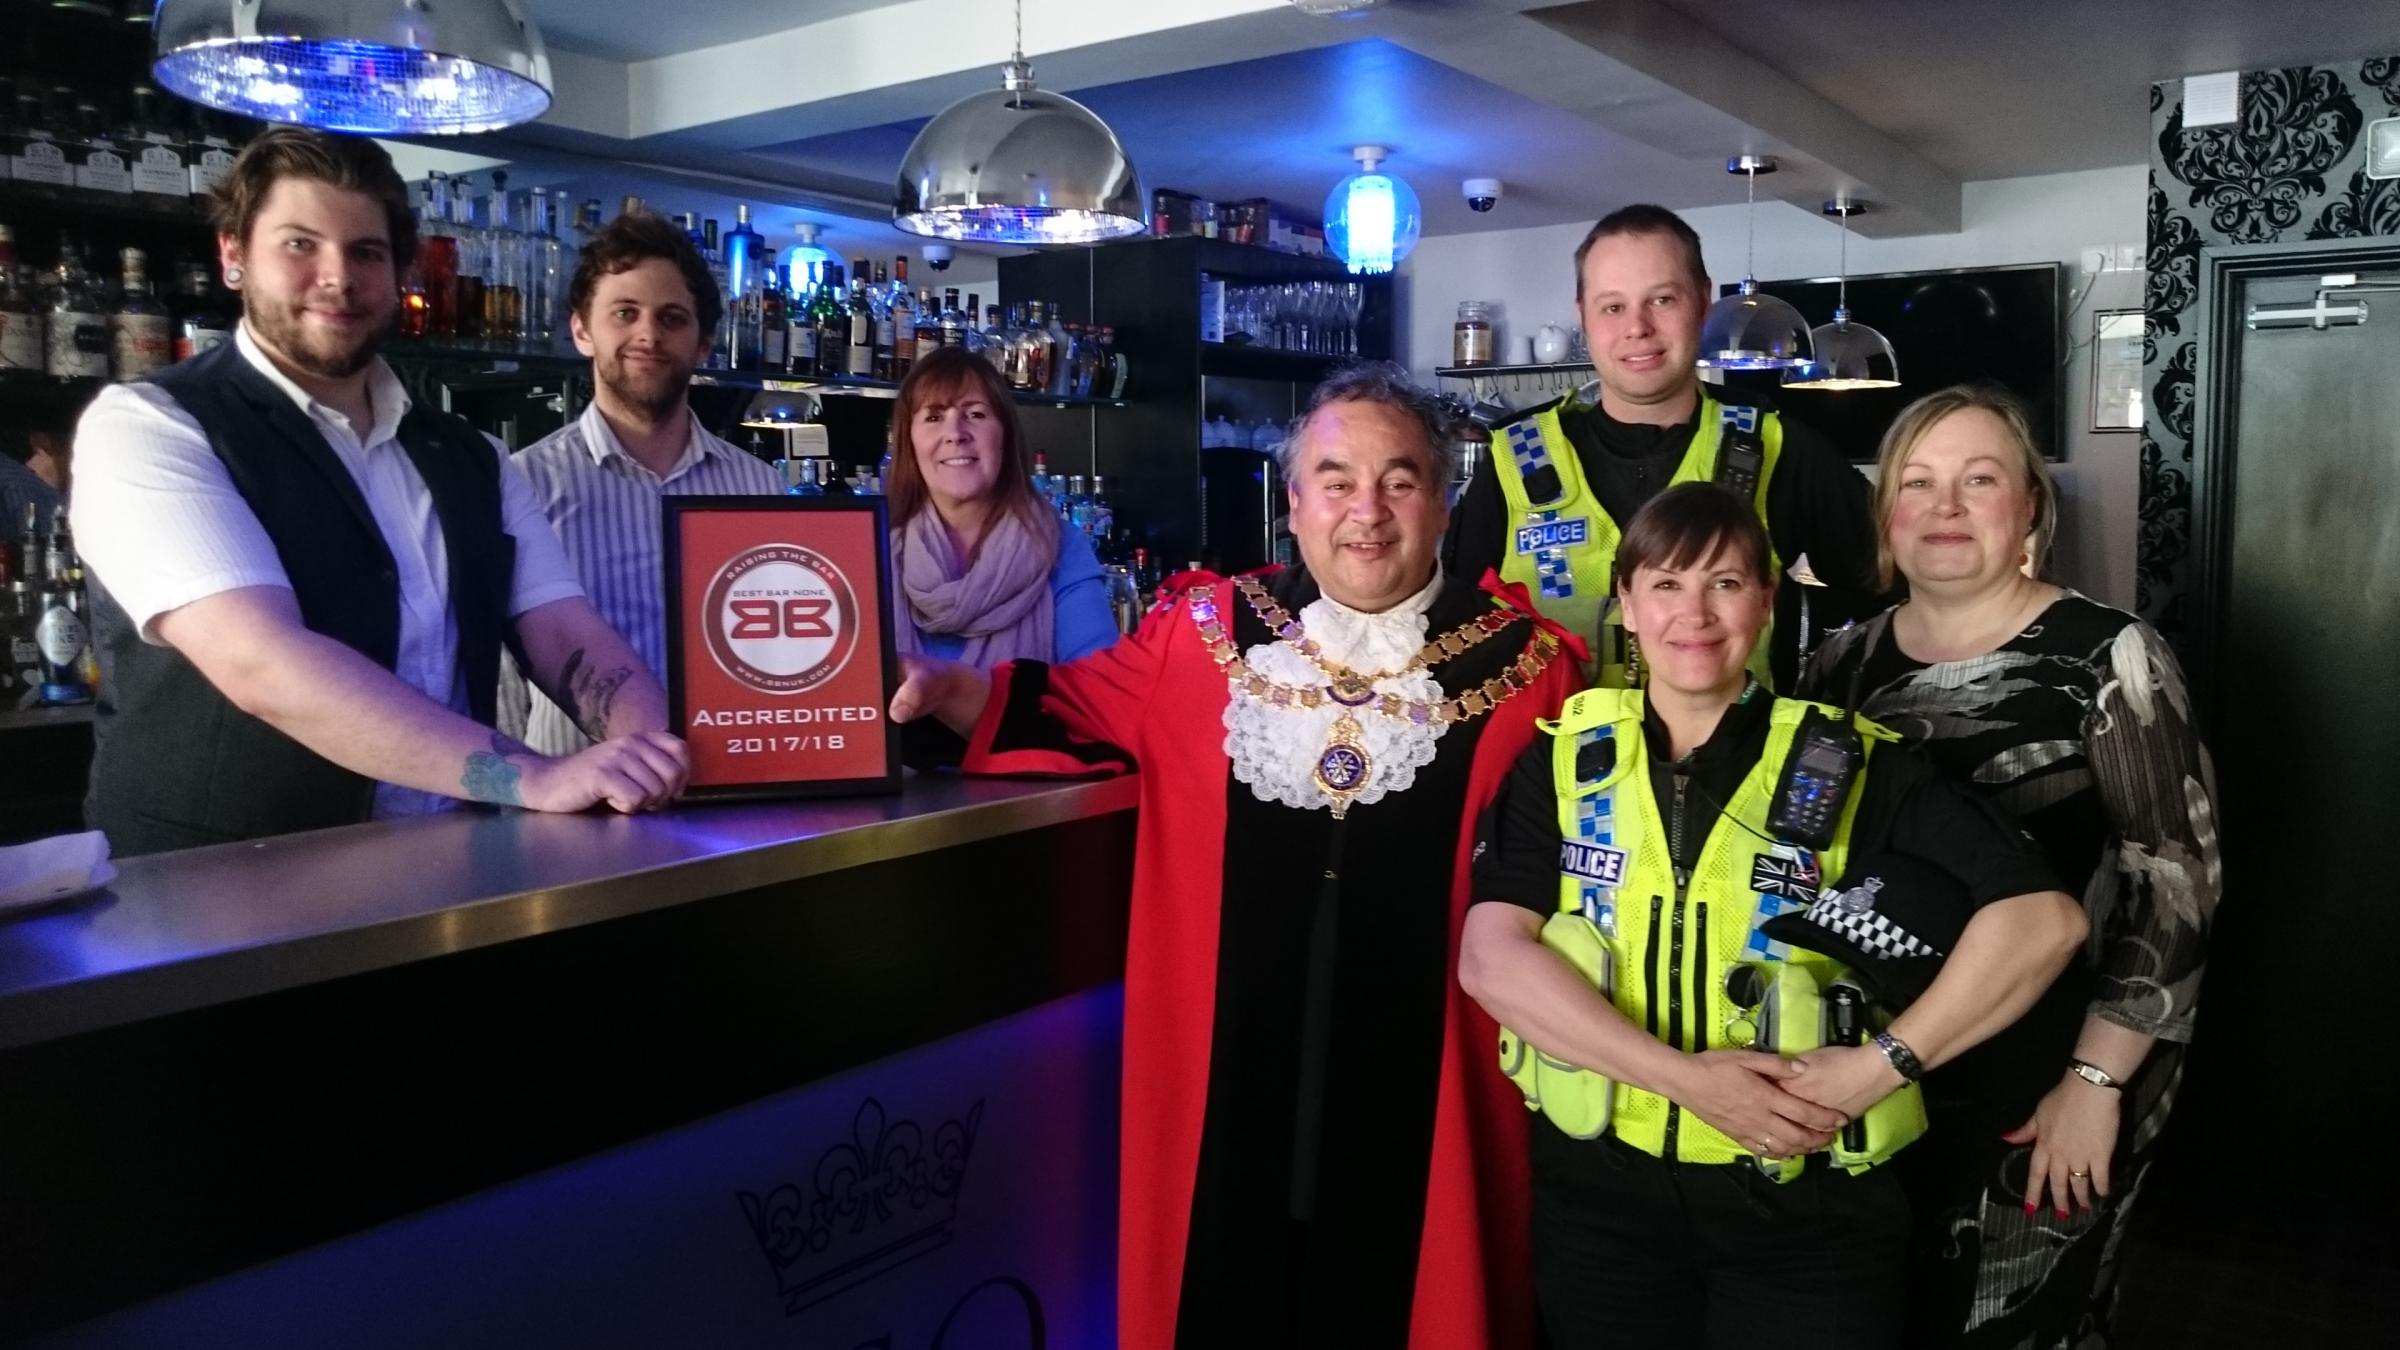 From left, Tom Venning, general manager; Nicholas Smout, assistant manager; Lorraine Forshaw, owner; former Mayor of Skipton Cllr Martin Emmerson; PC Jonathan Stubbs; PC Victoria Brook; Geraldine Thompson, Skipton BID VSQ Skipton